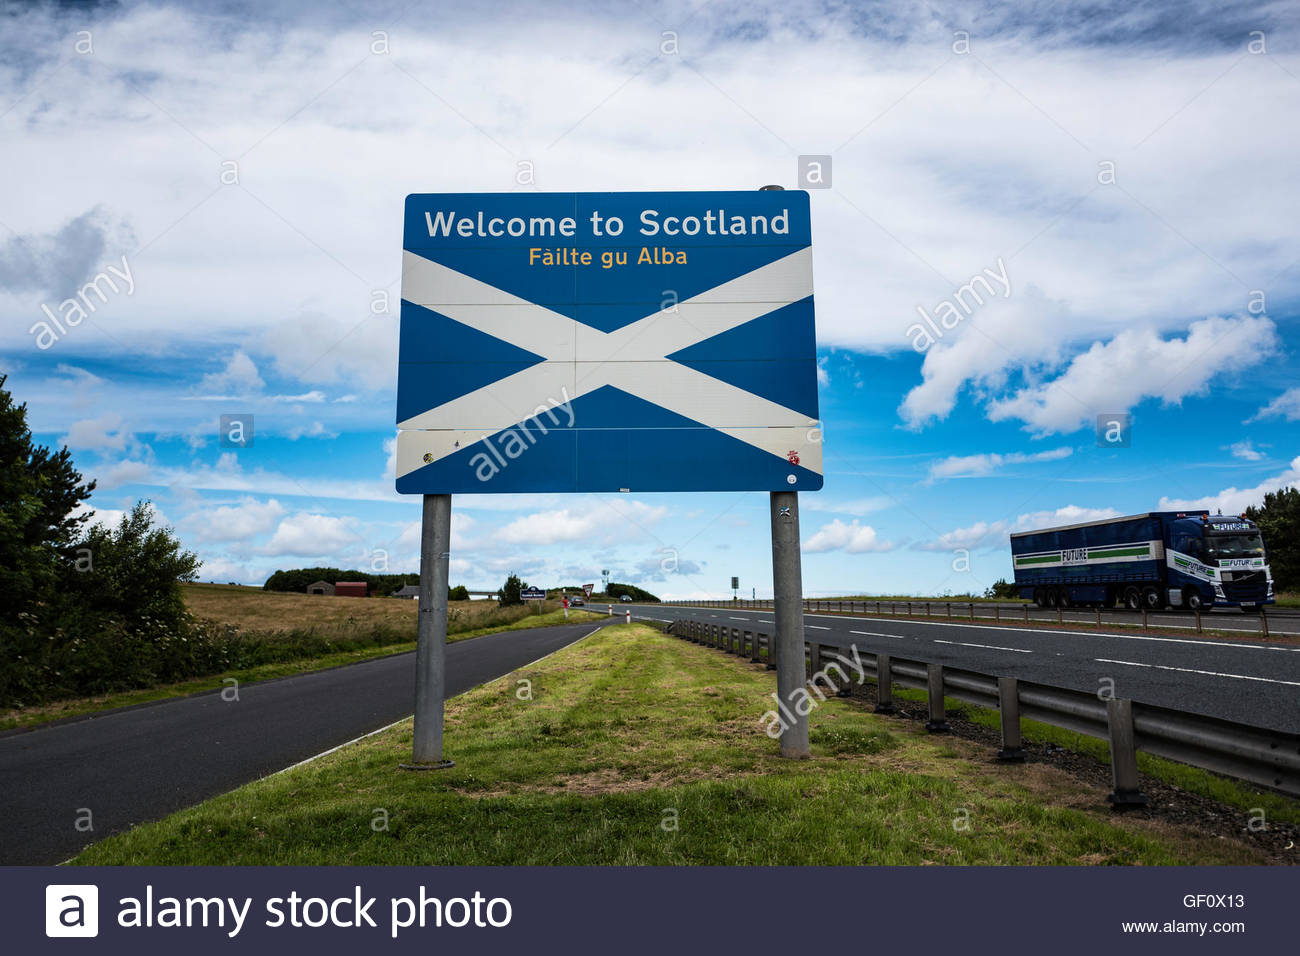 The Anglo Scot Border on the A1 road just North of Berwick upon Tweed. - Stock Image